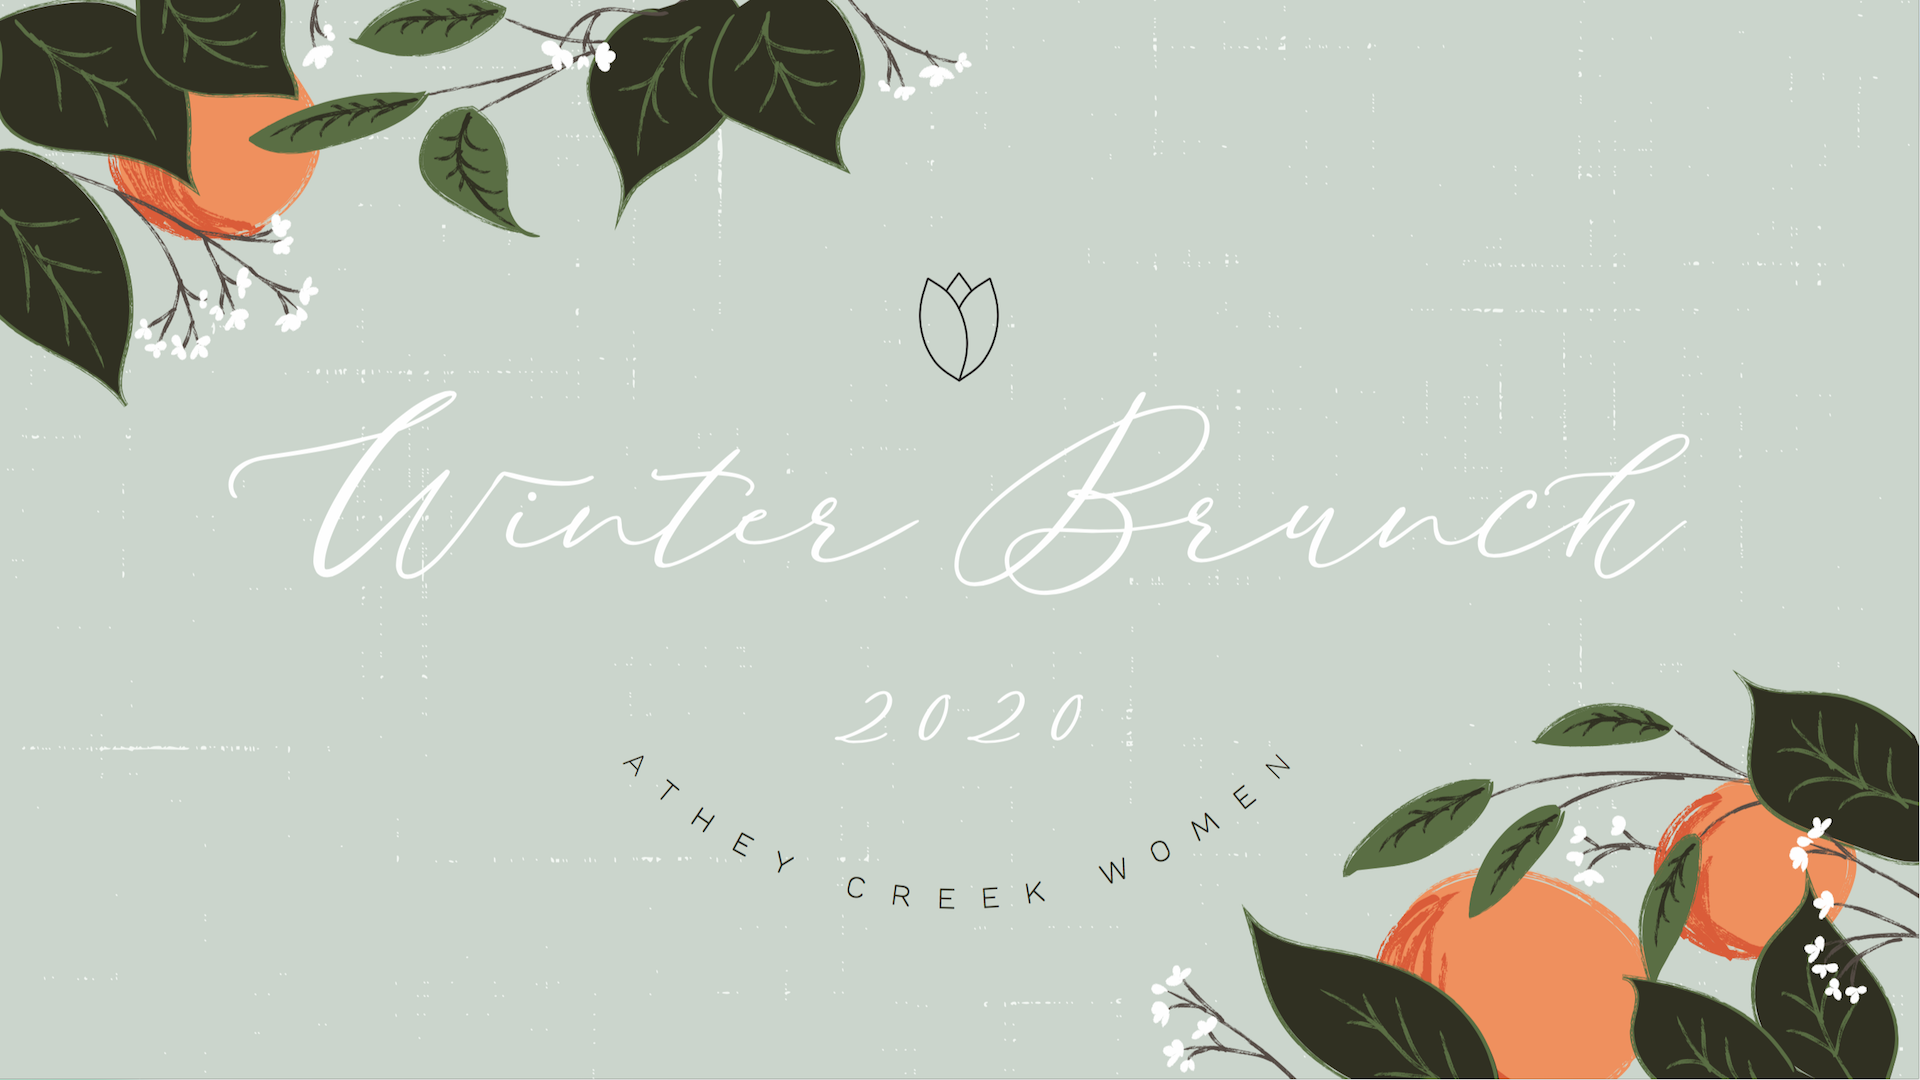 Teaching artwork for Women's Winter Brunch